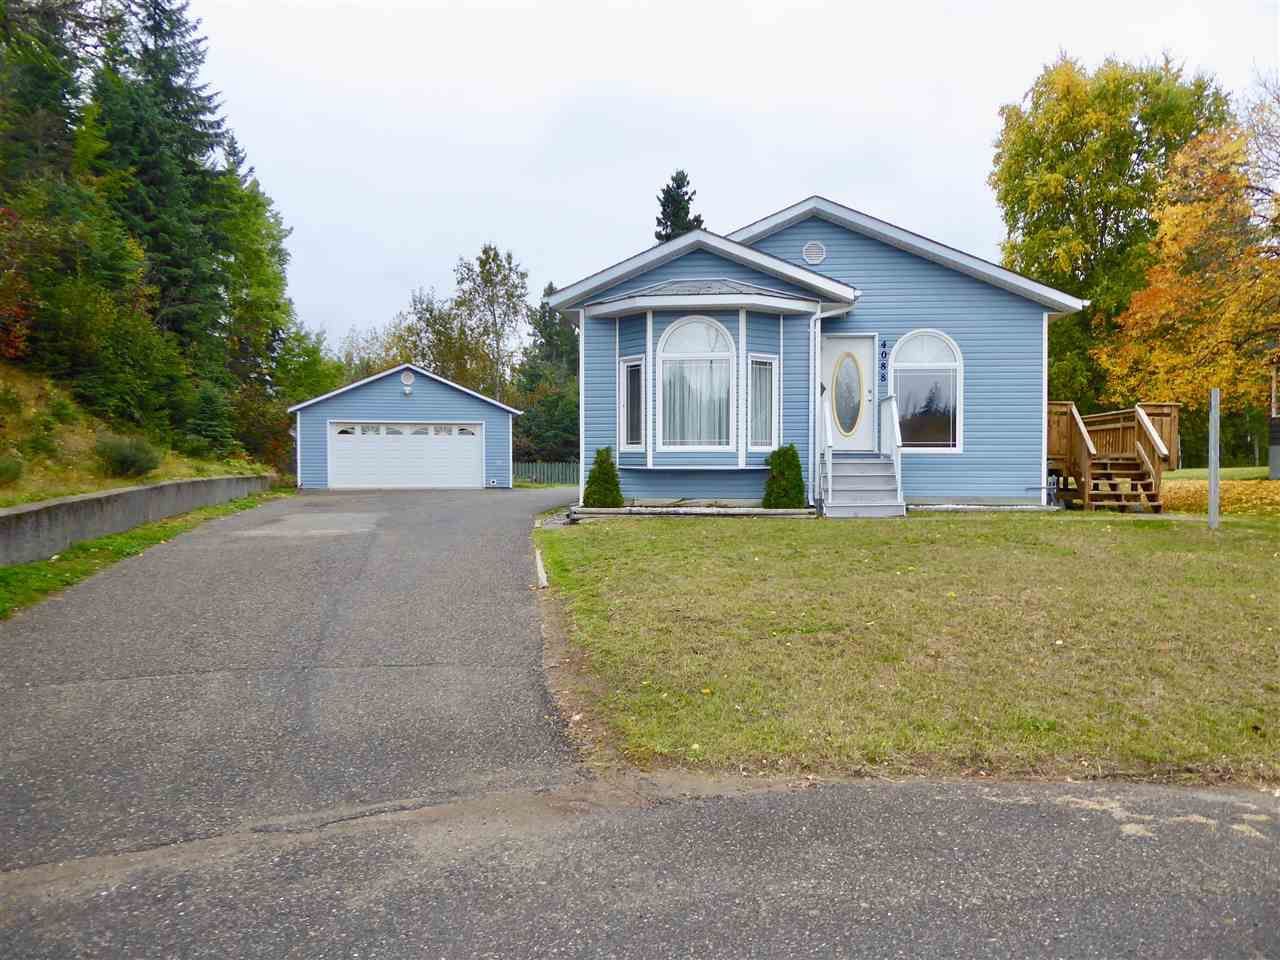 Main Photo: 4088 KRYSTAL Place in Prince George: Mount Alder House for sale (PG City North (Zone 73))  : MLS®# R2210382